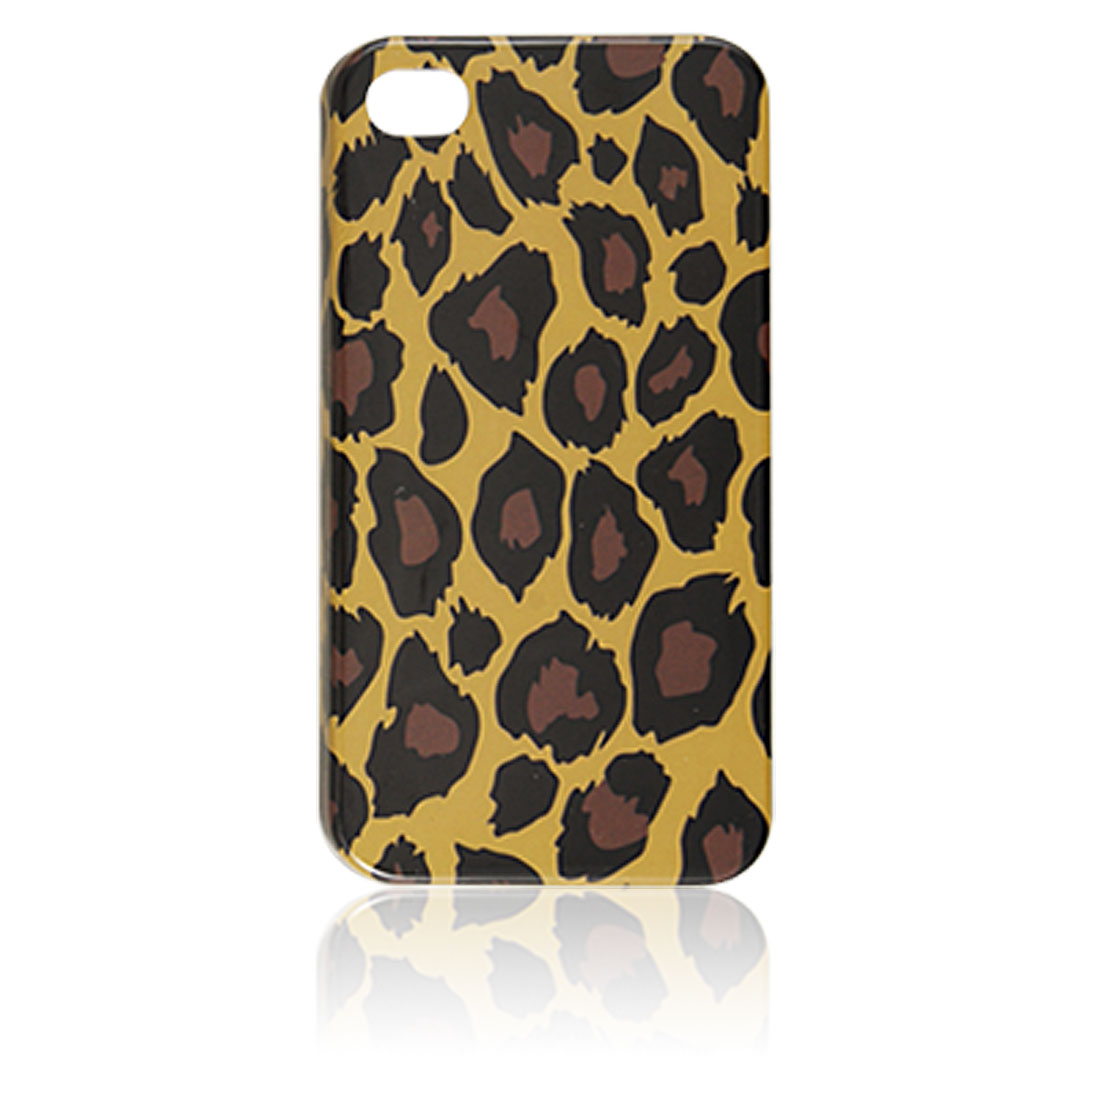 Leopard Pattern Hard Plastic Back Case Cover for iPhone 4 4G